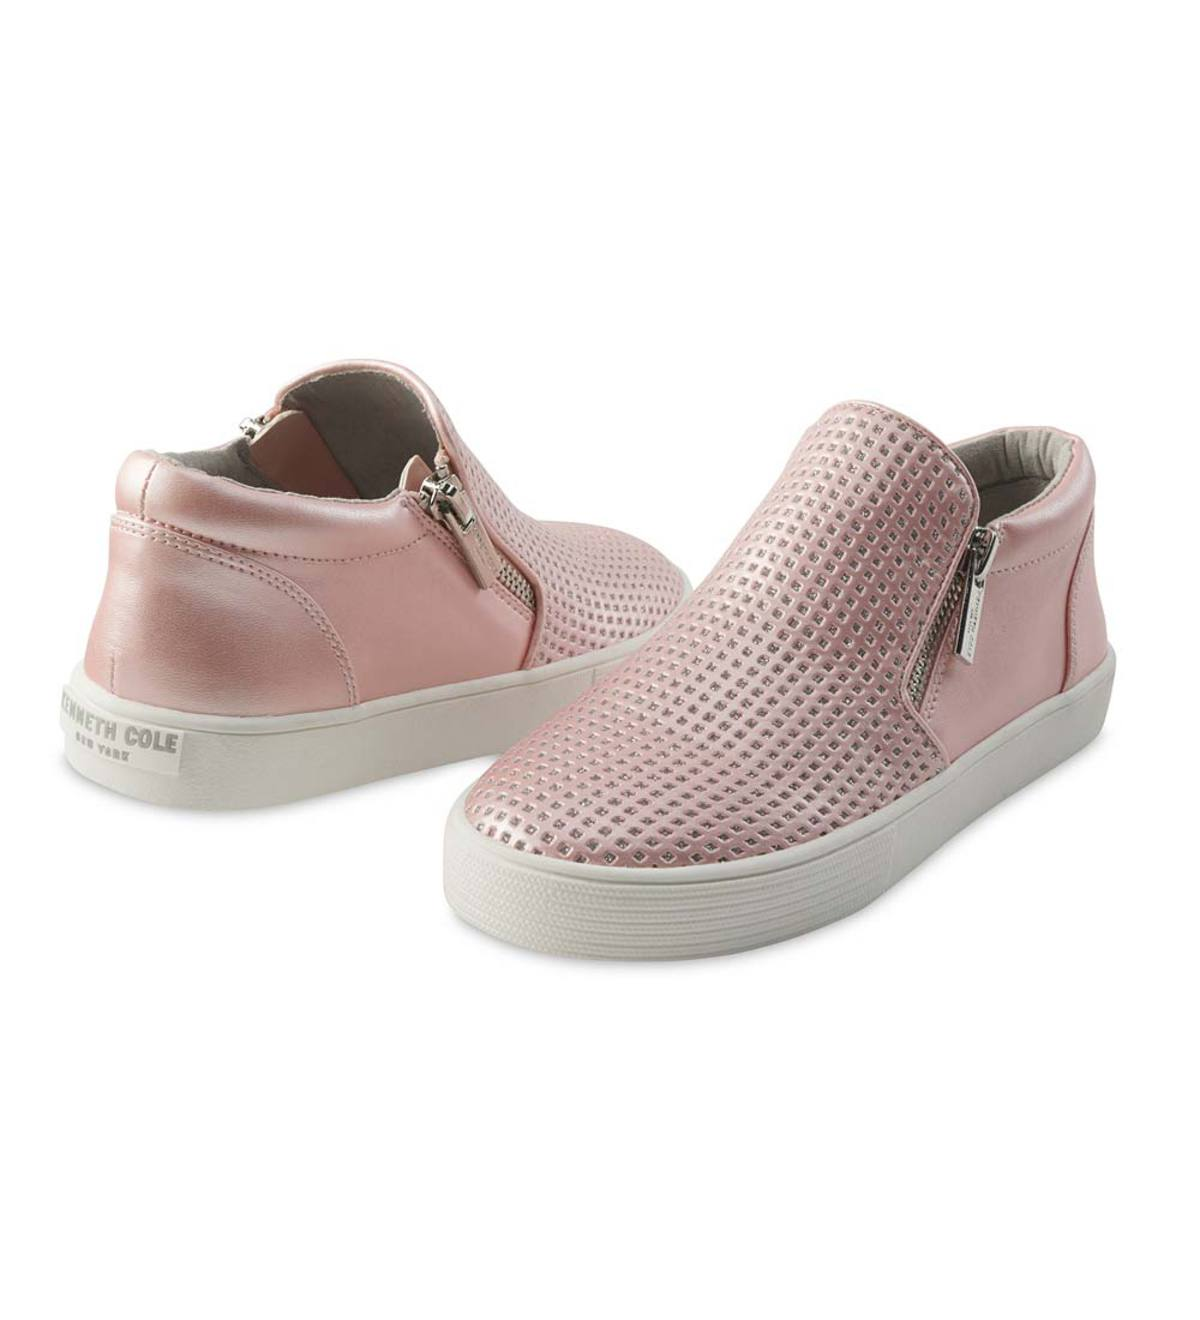 Kenneth Cole Reaction Glitter Mid-Top Slip-On Sneaker - Pink - 1